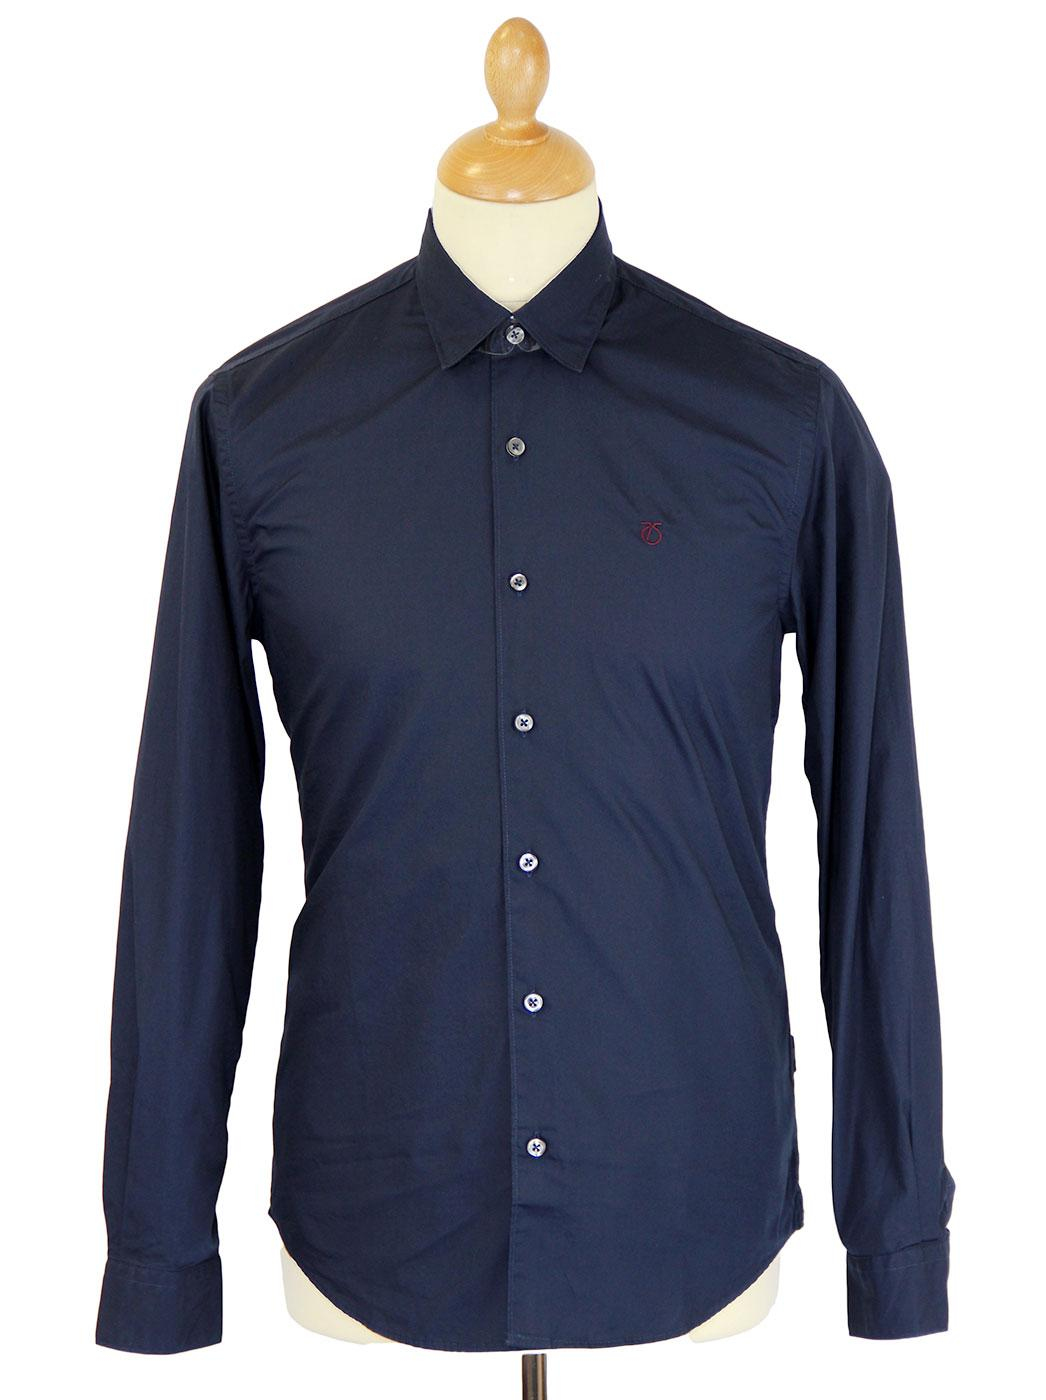 PETER WERTH Mod Concealed Button Down Shirt (N)